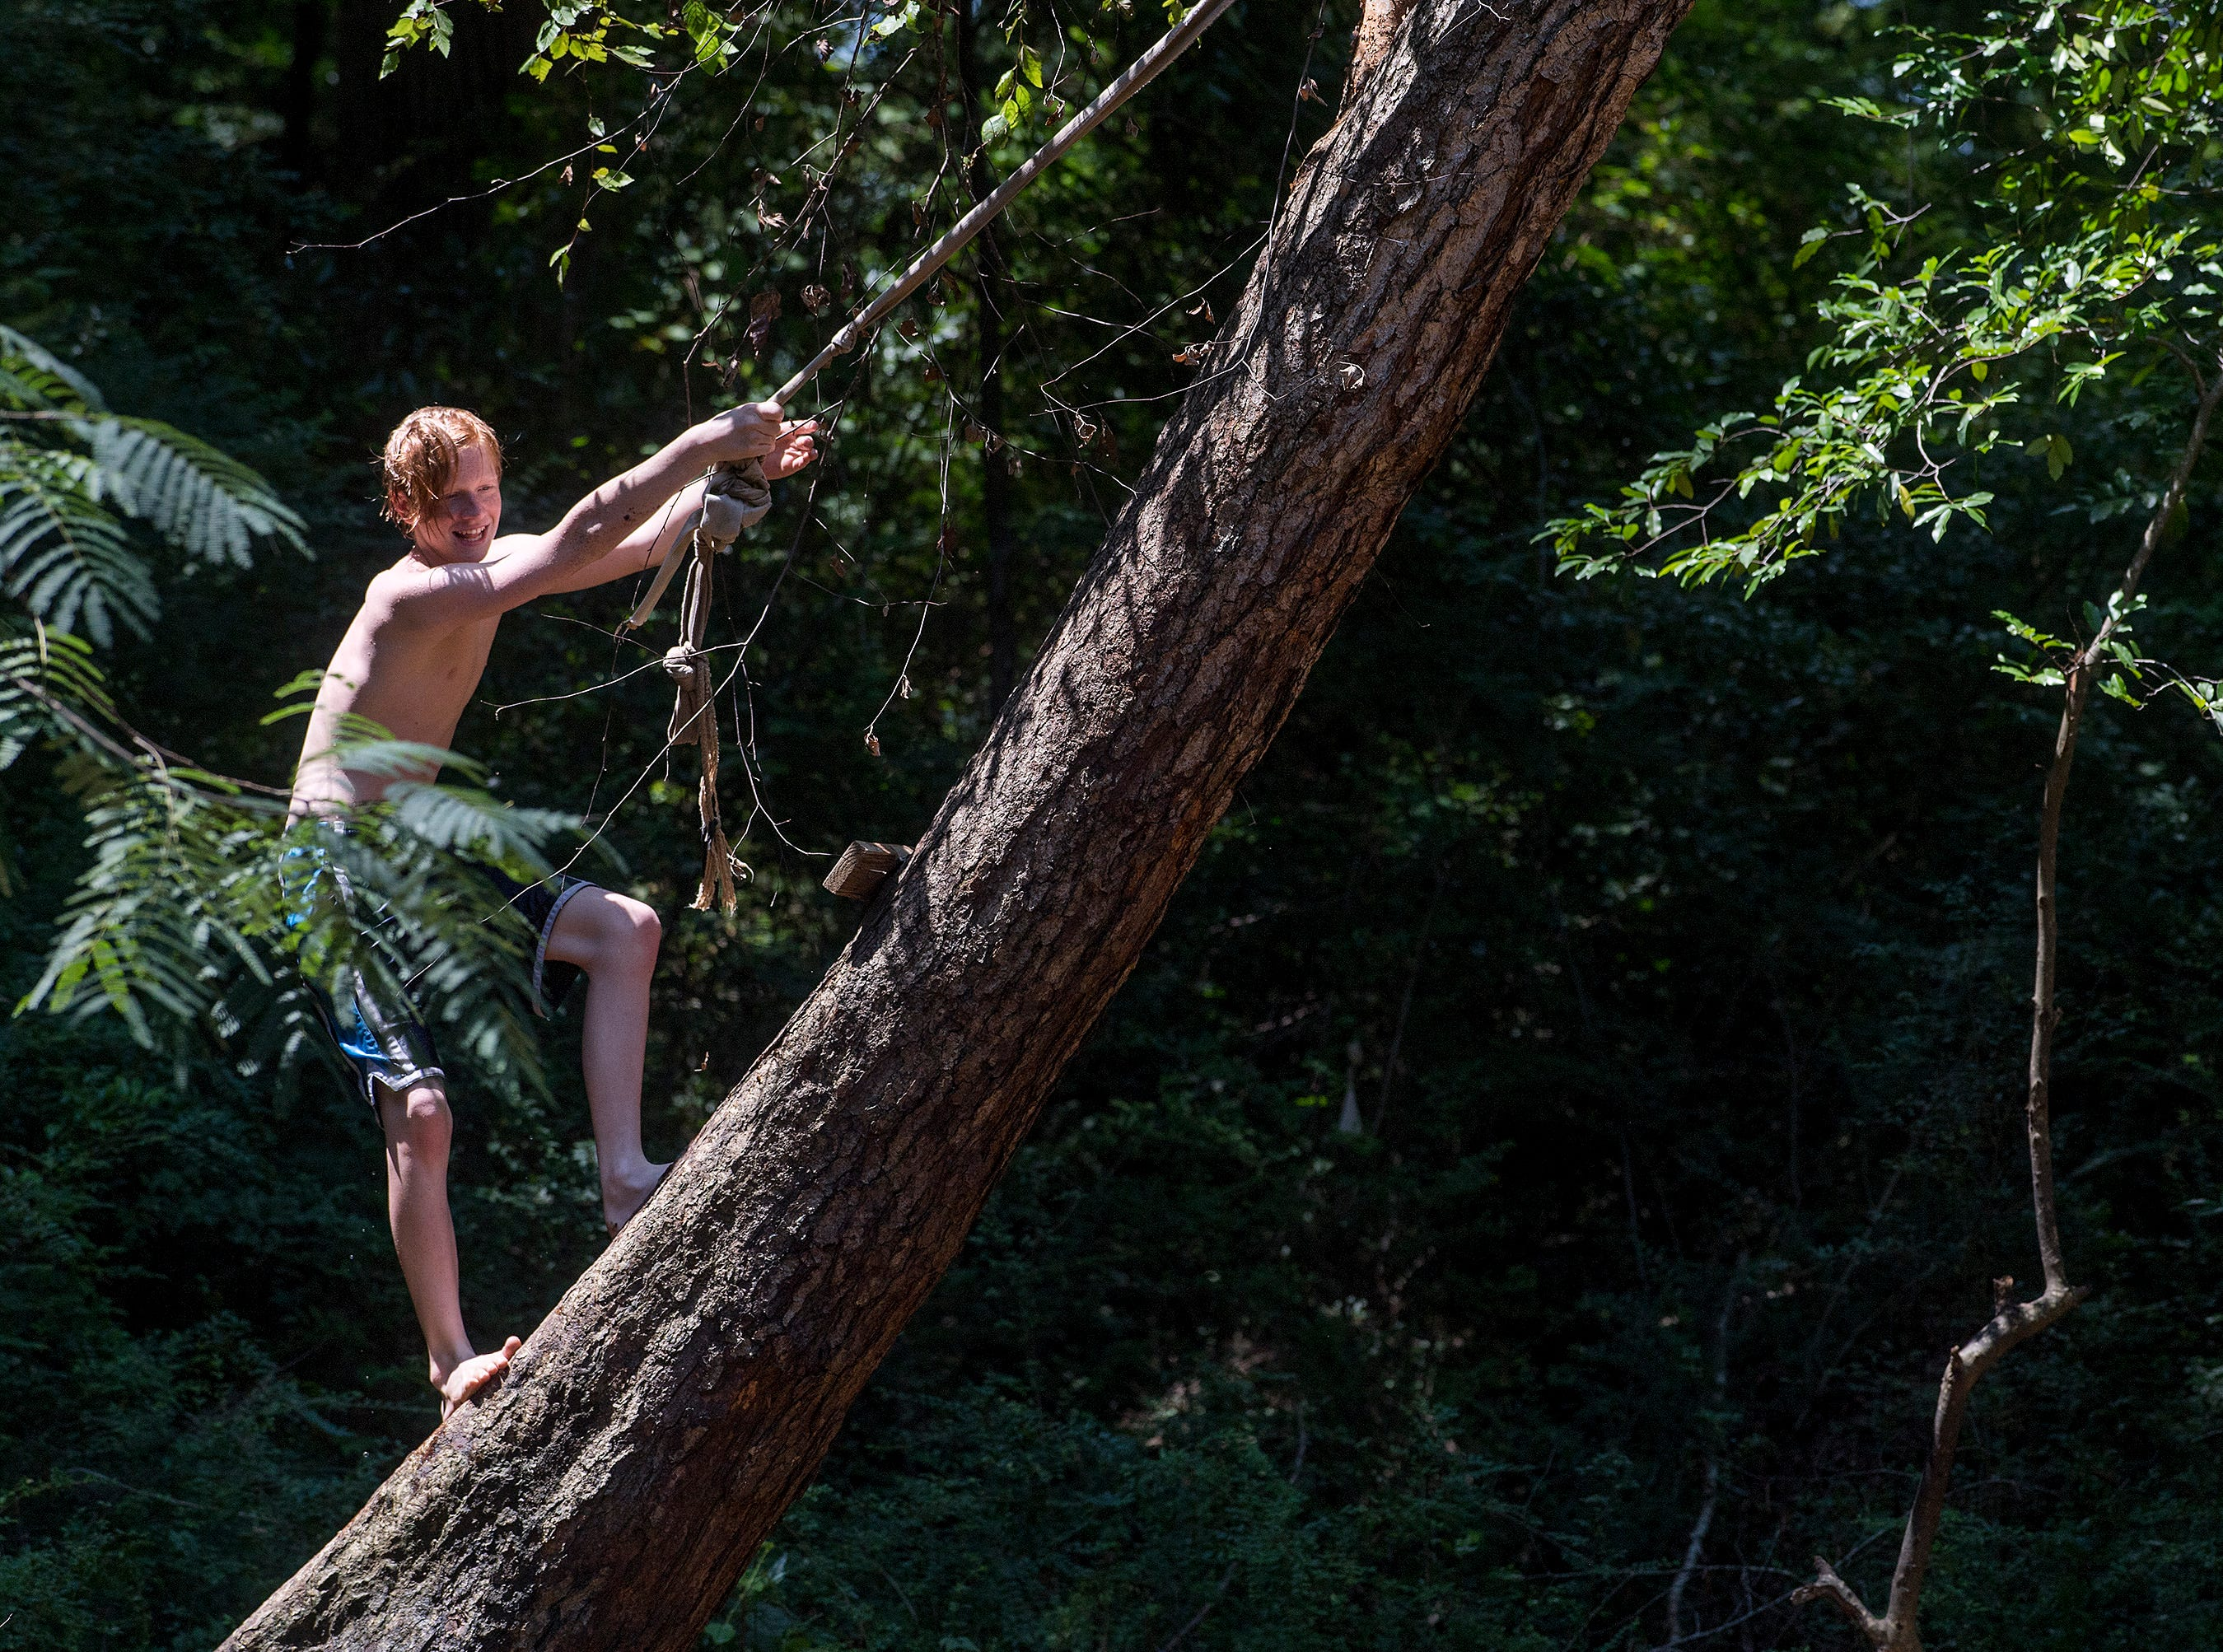 Caleb Eady plays on a rope swing on Autauga Creek in Prattville, Ala., on Saturday, July 21, 2018.